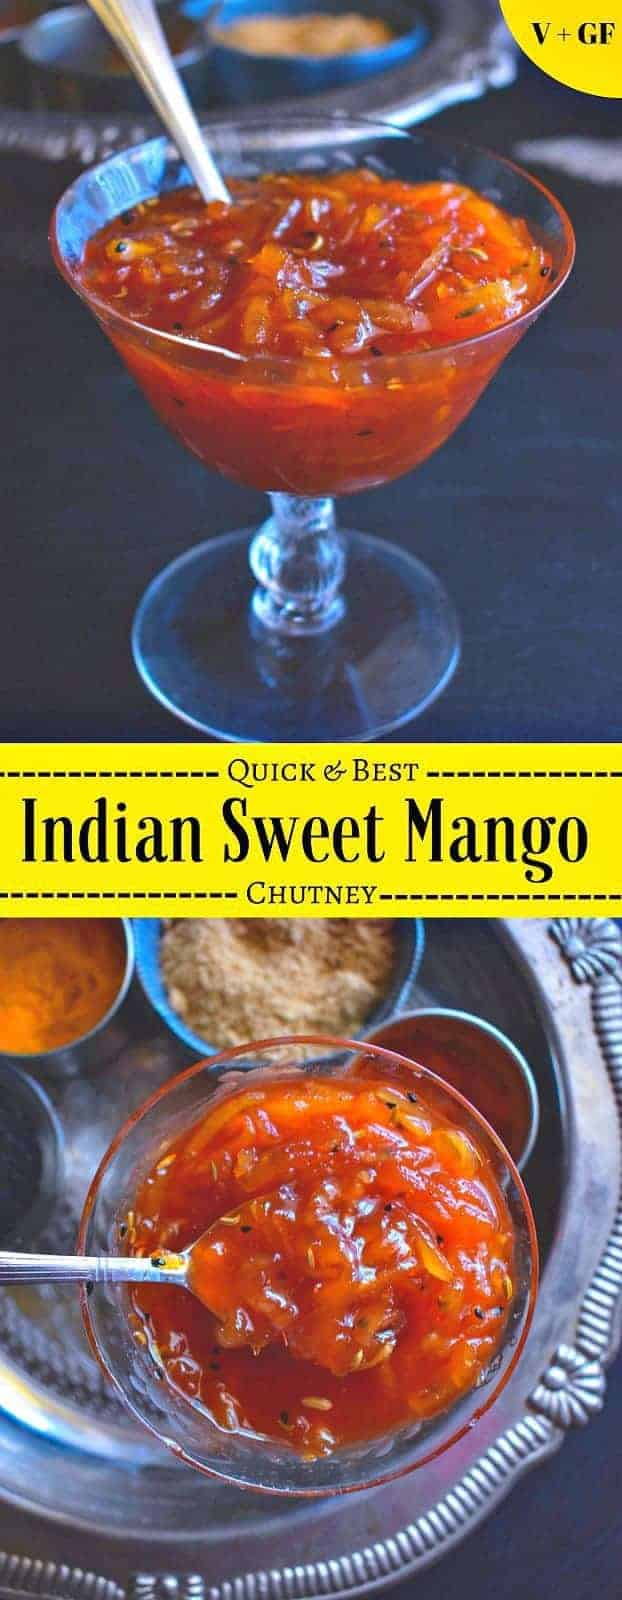 Indian Sweet Mango Chutney Recipe: #mango #mangochutney #chutney #vegan #indian #sweet